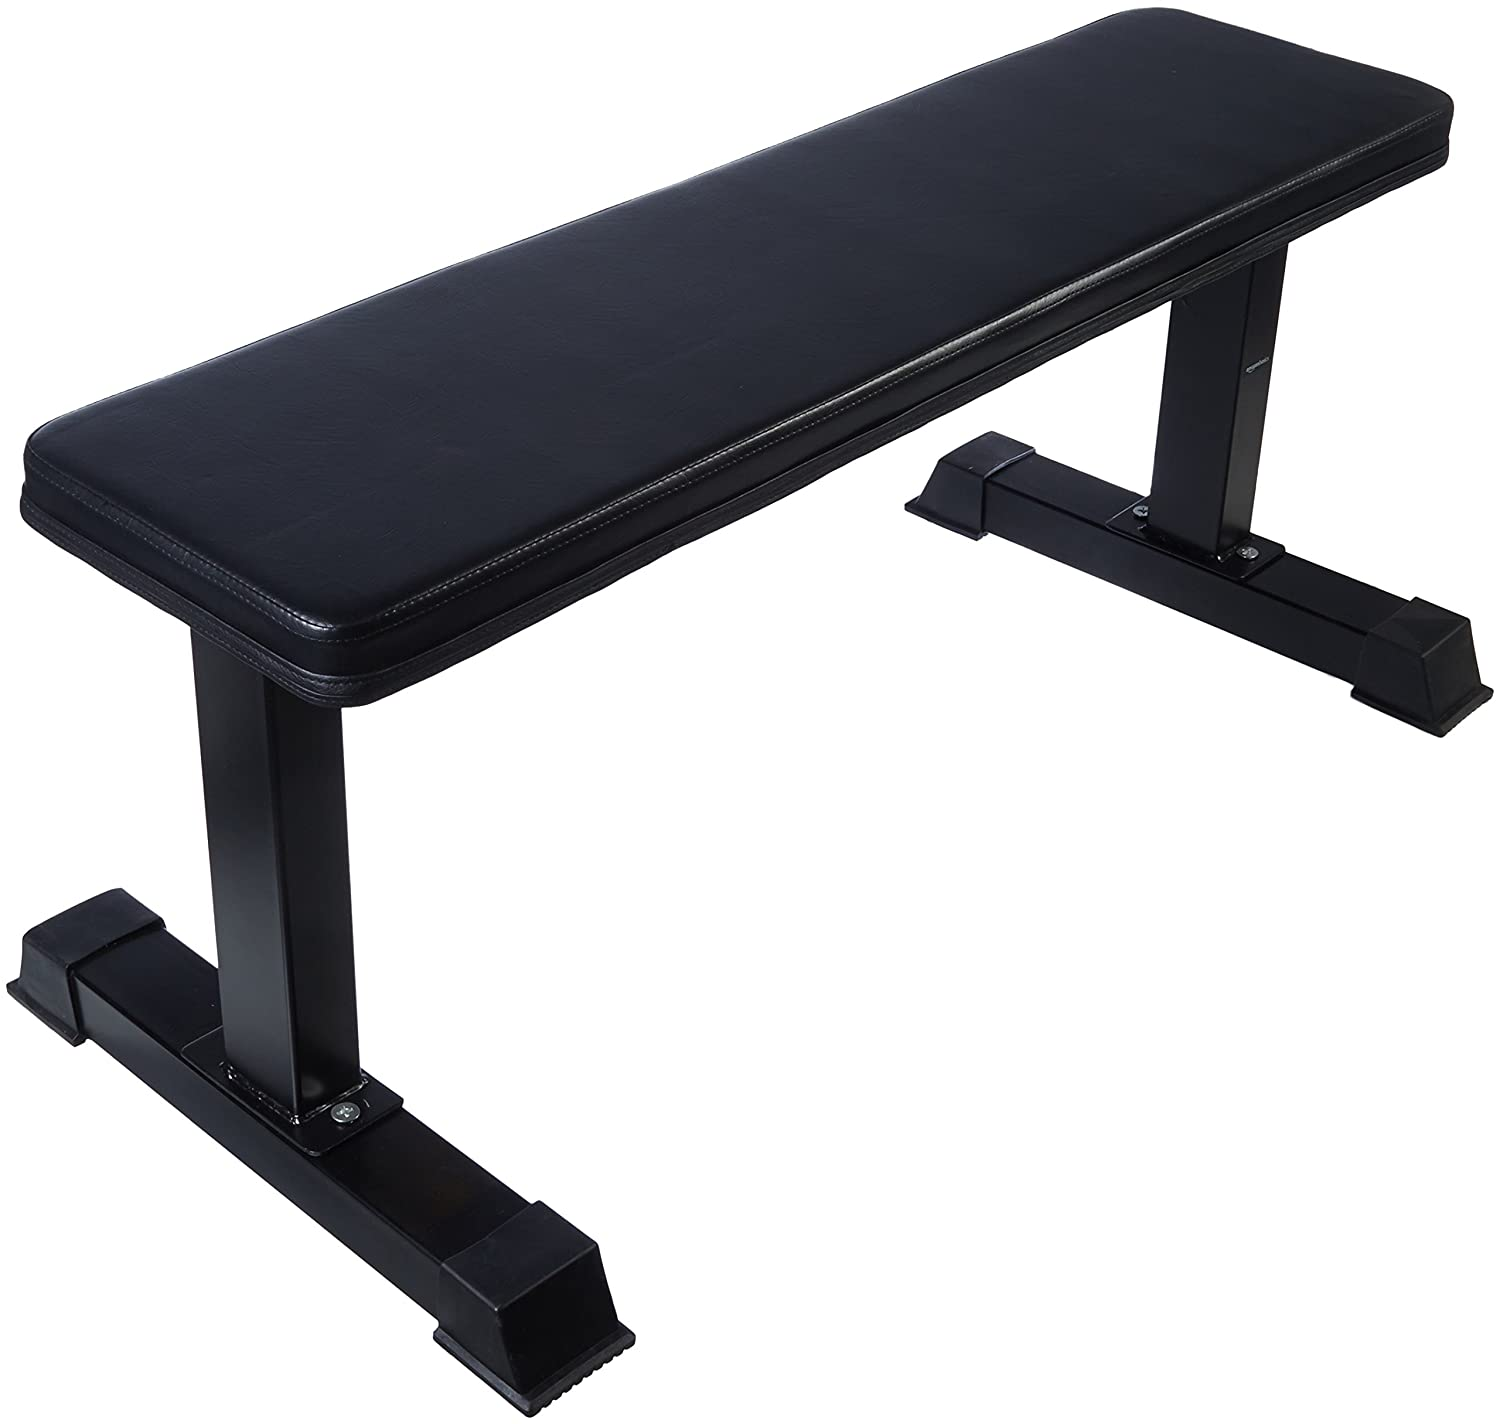 AmazonBasics Flat Weight Workout Exercise Bench - 41 x 20 x 11 Inches